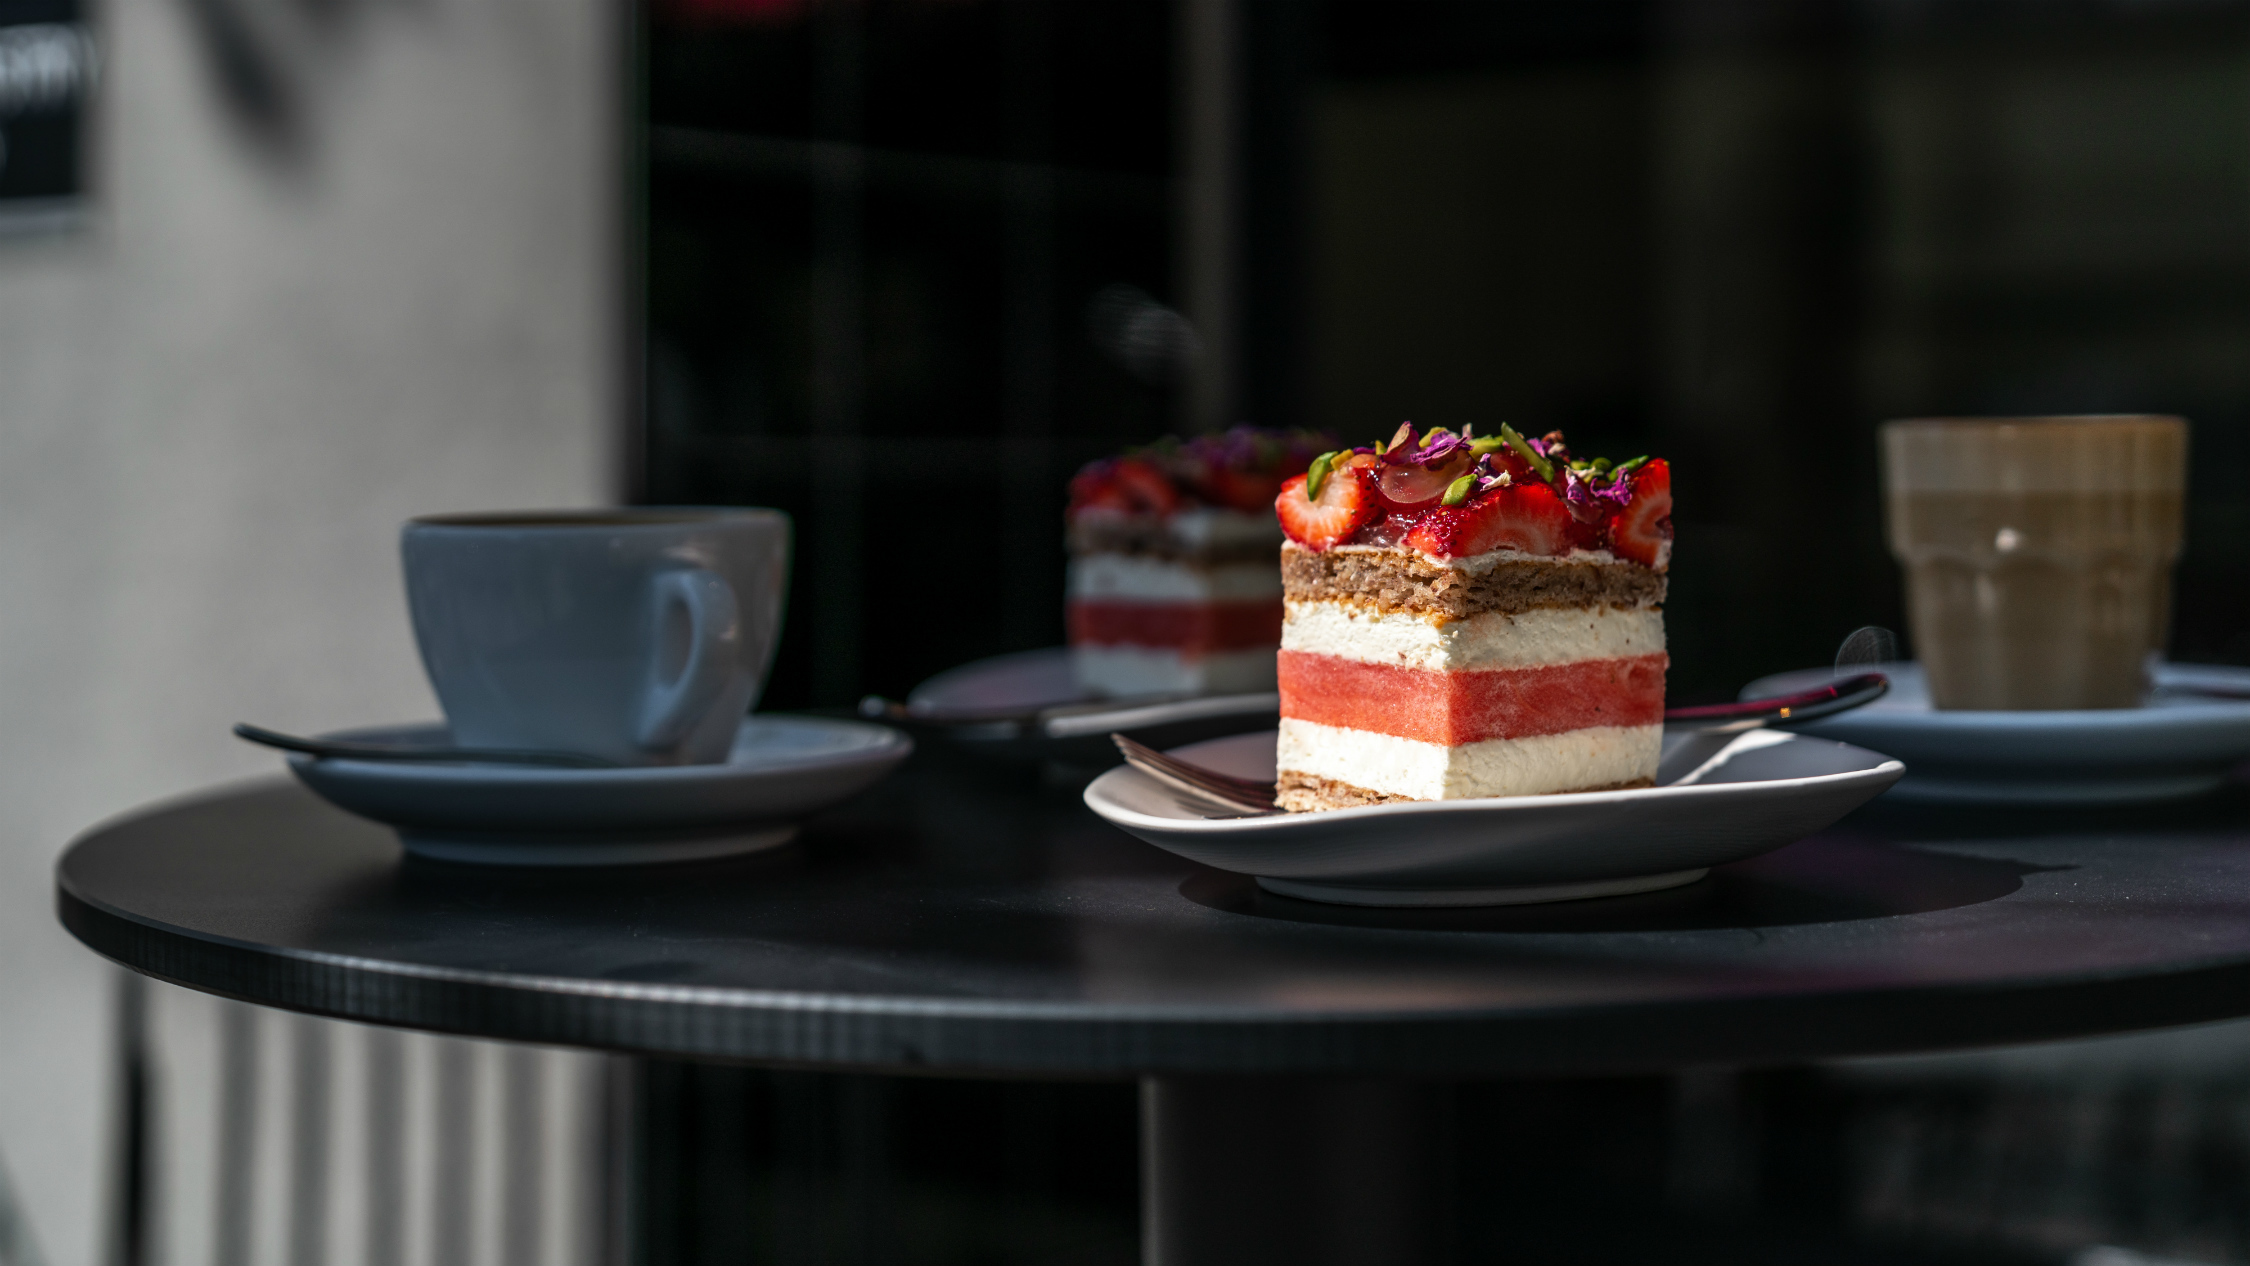 Black Star Pastry's strawberry watermelon cake on a table